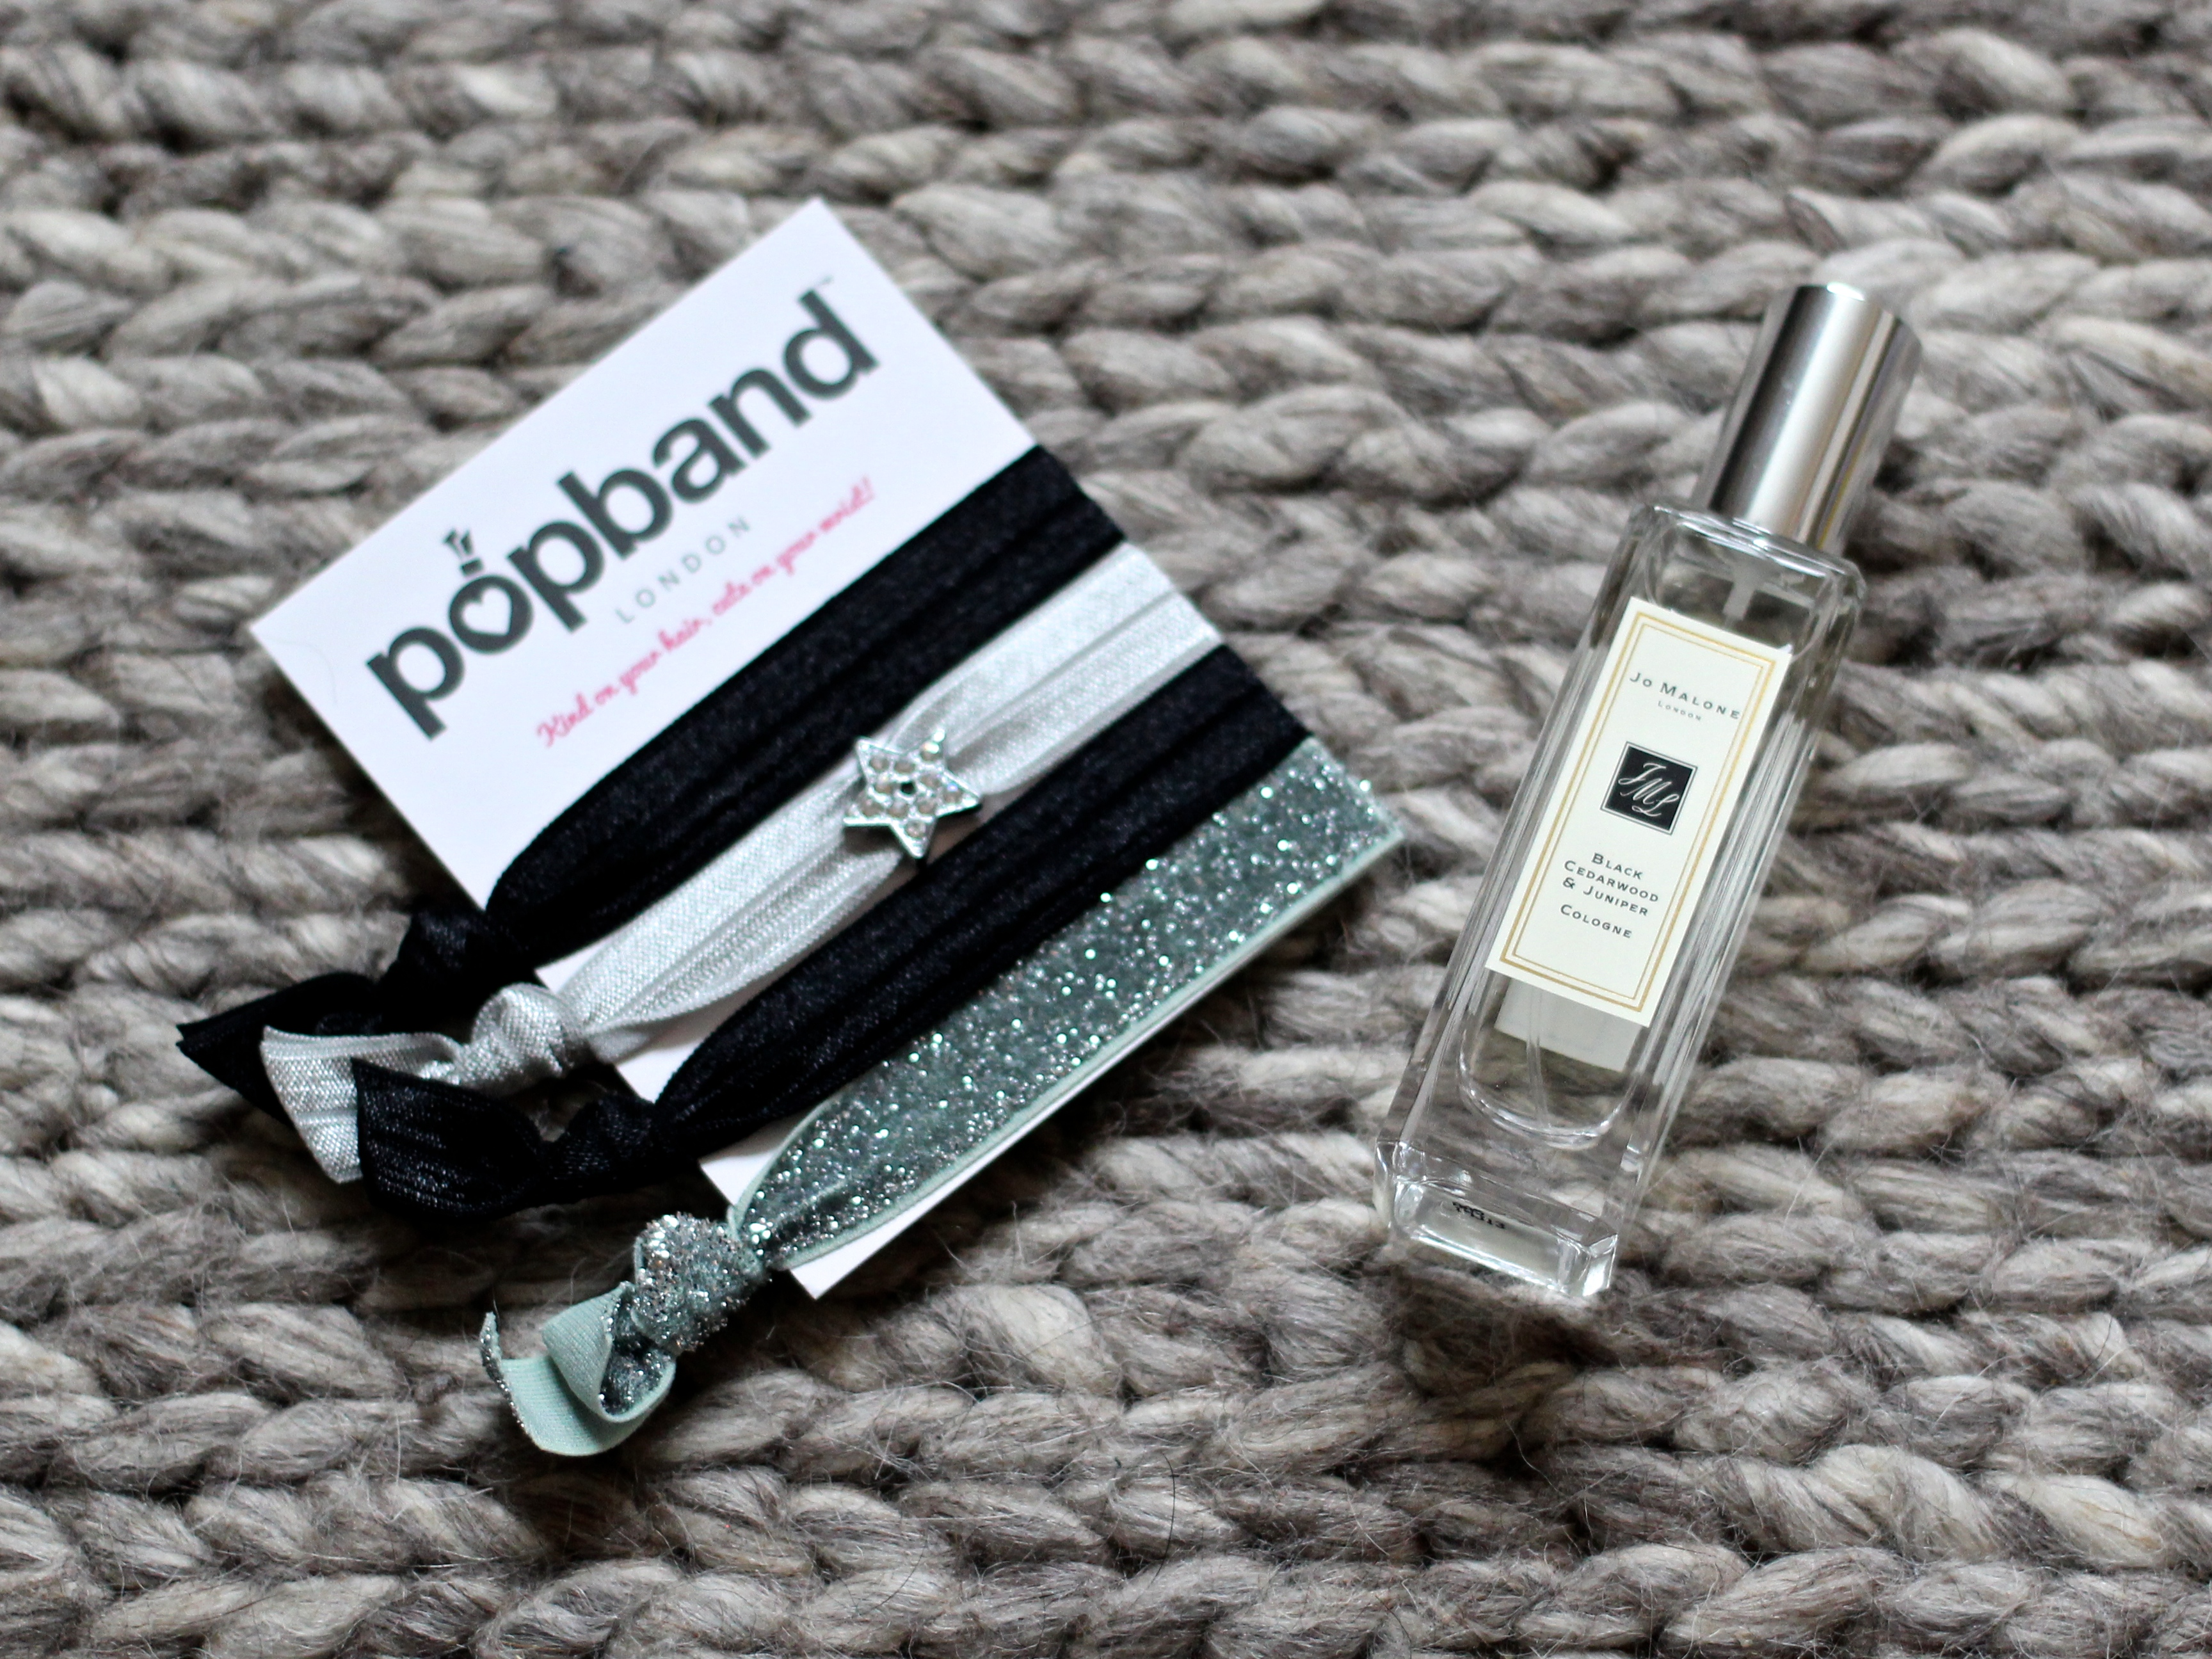 Jo Malone Black Cedarwood and Juniper Perfume and Kate Popbands review